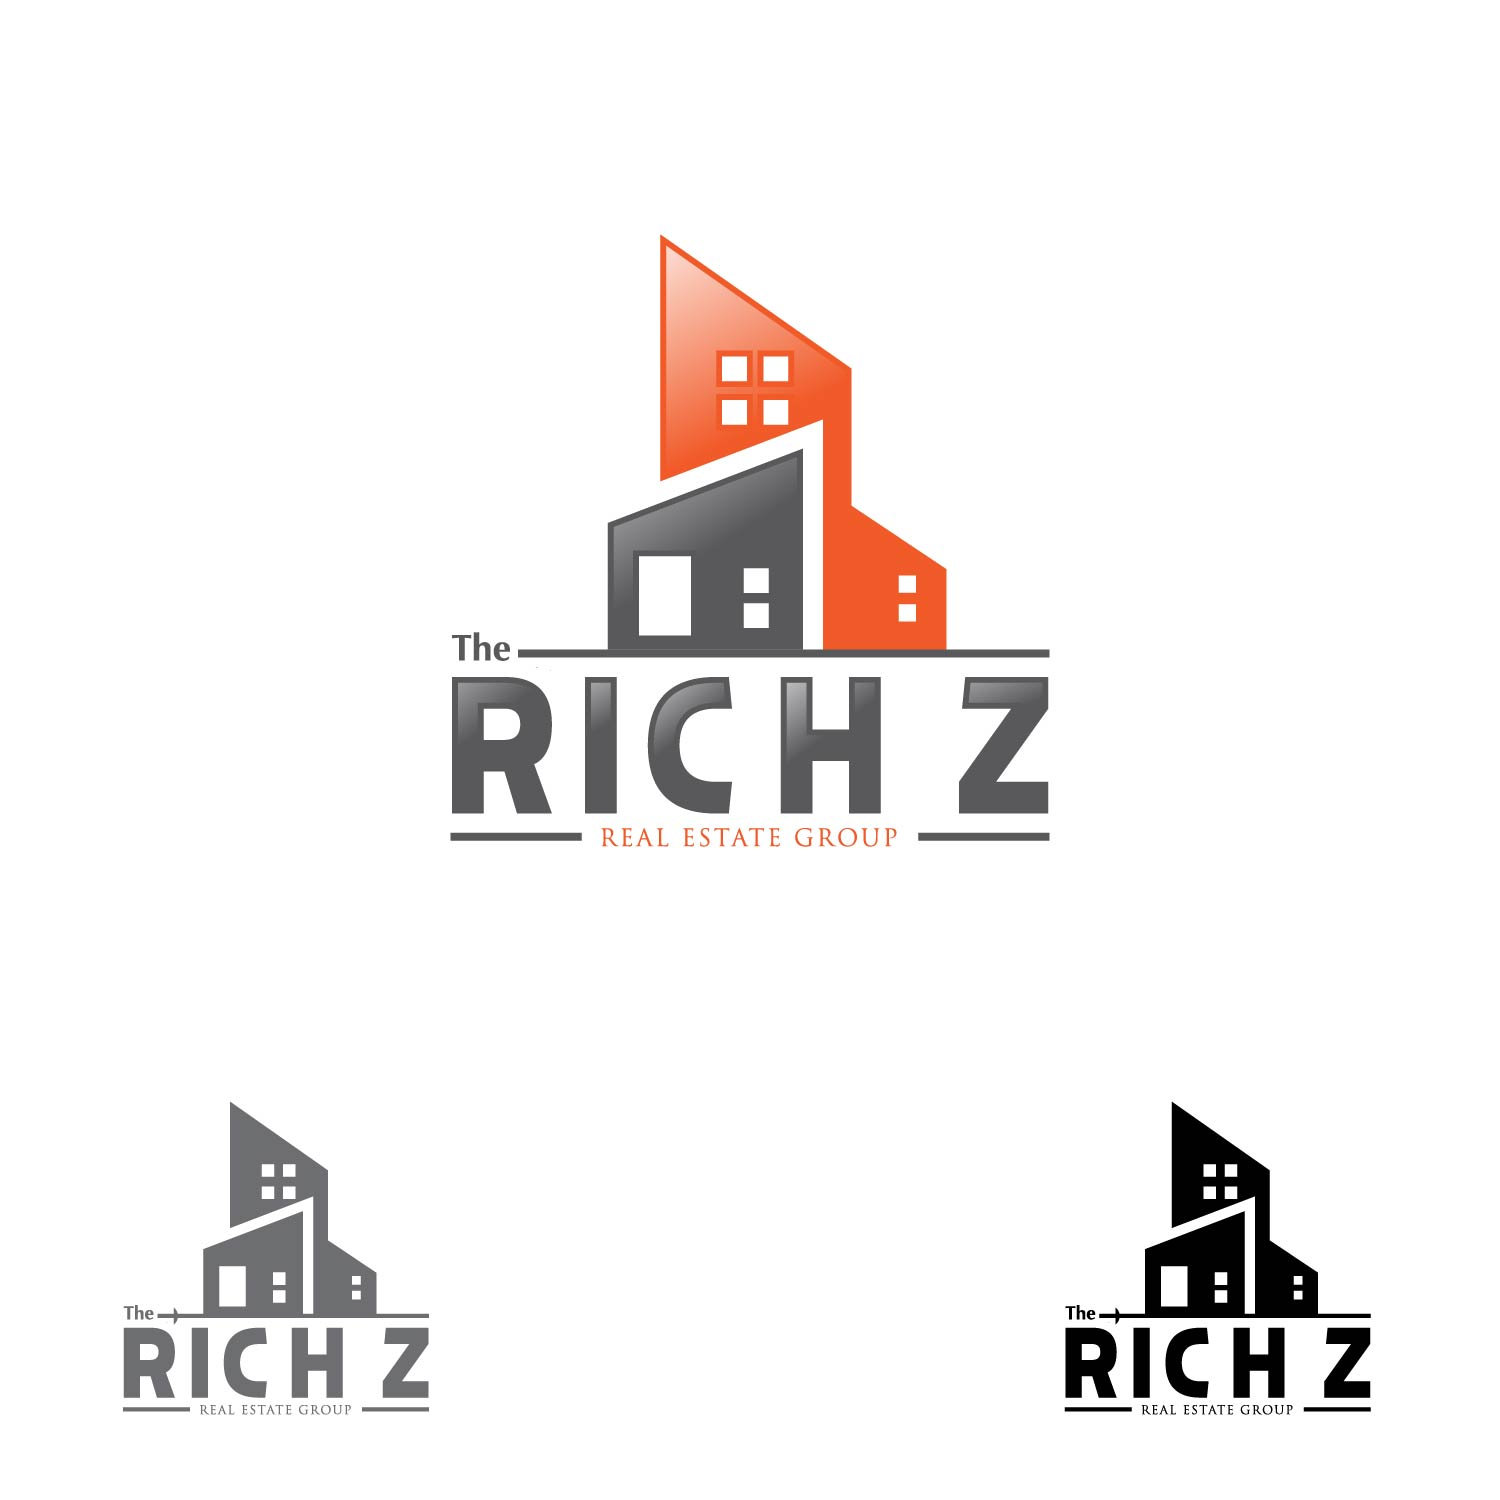 Logo Design by lagalag - Entry No. 152 in the Logo Design Contest The Rich Z. Real Estate Group Logo Design.